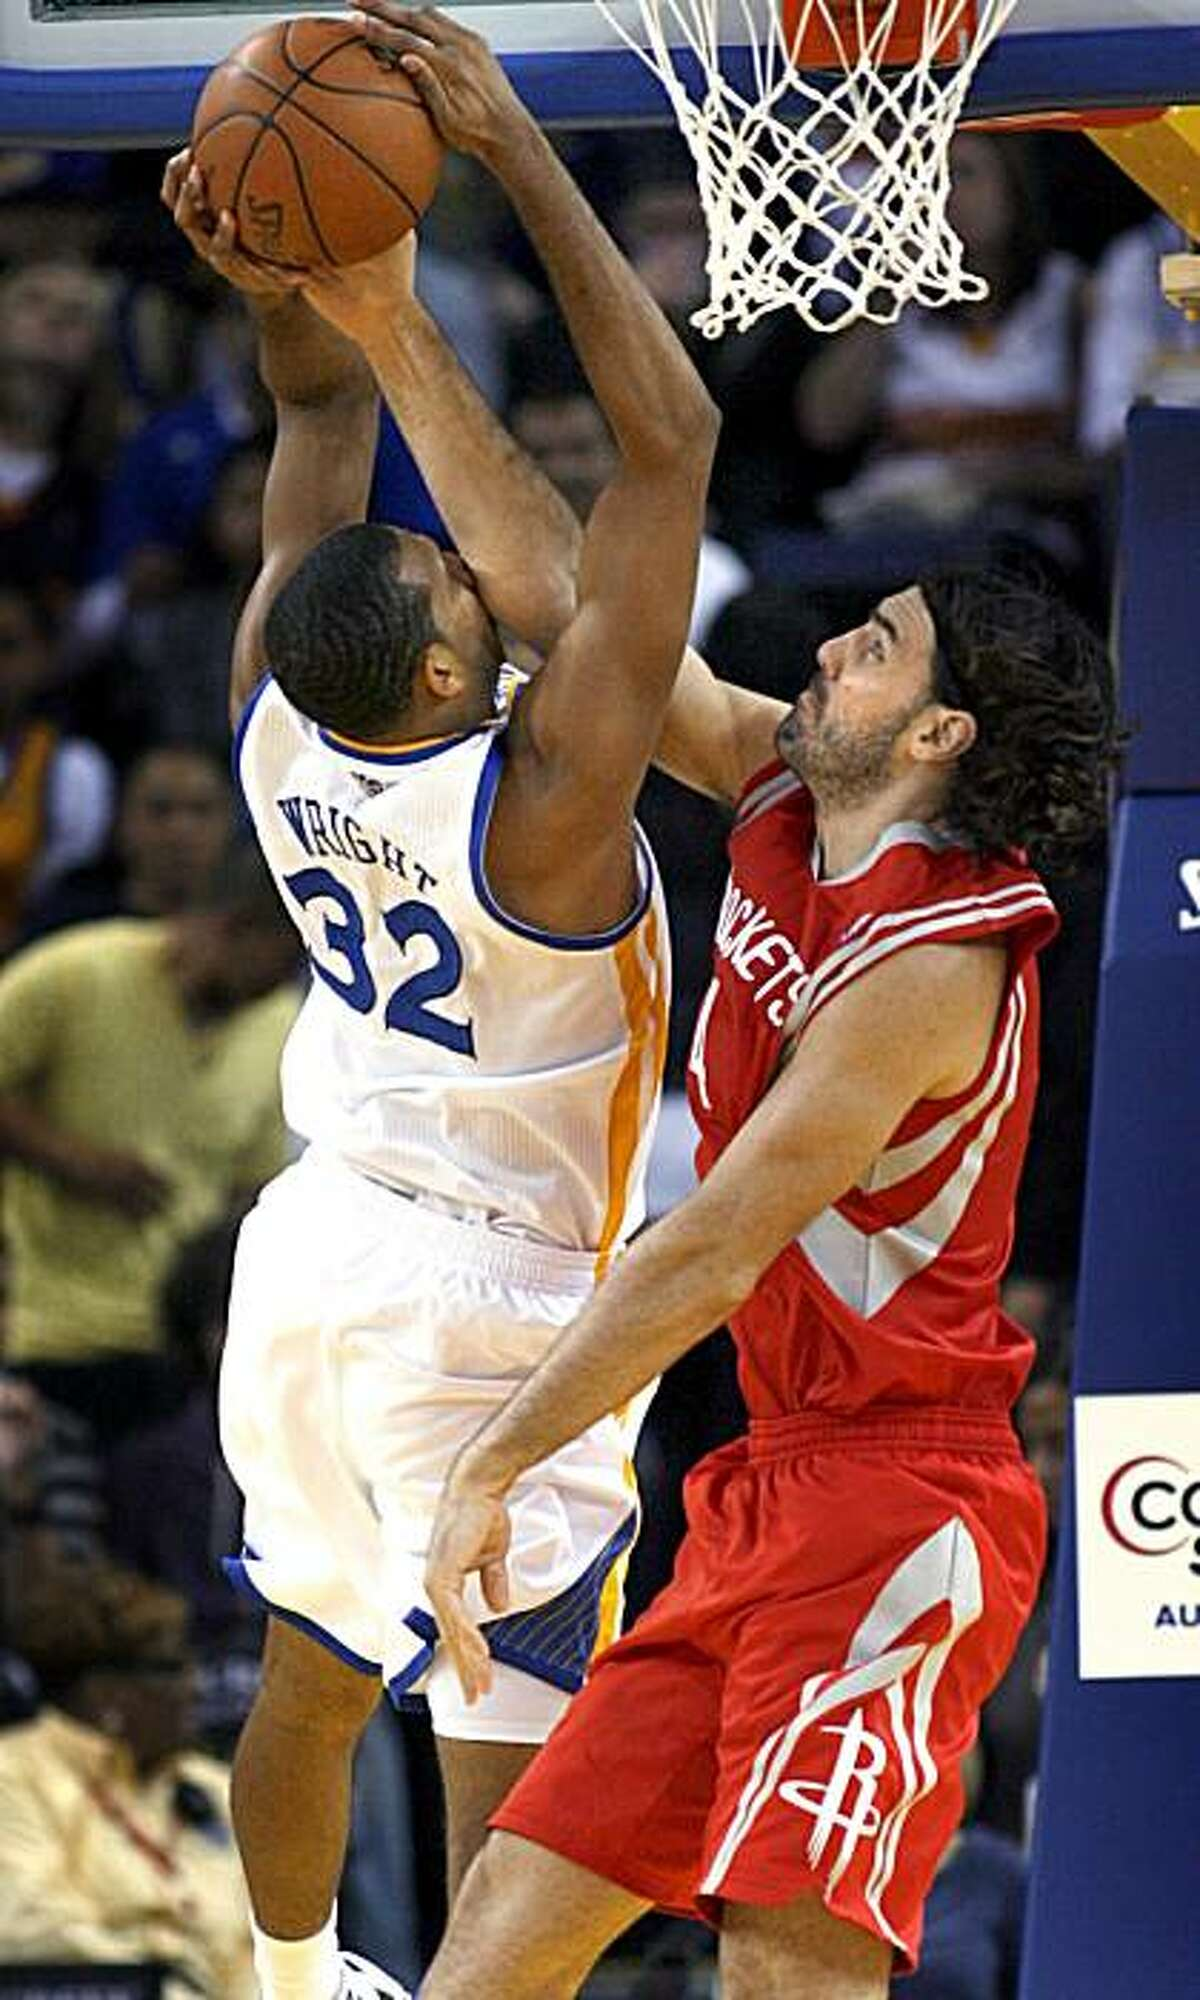 Golden State Warriors' Brandan Wright (32) takes an elbow to the face from Houston Rockets' Luis Scola, of Argentina, while shooting during the first half of an NBA basketball game Wednesday, Oct. 27, 2010, in Oakland, Calif.